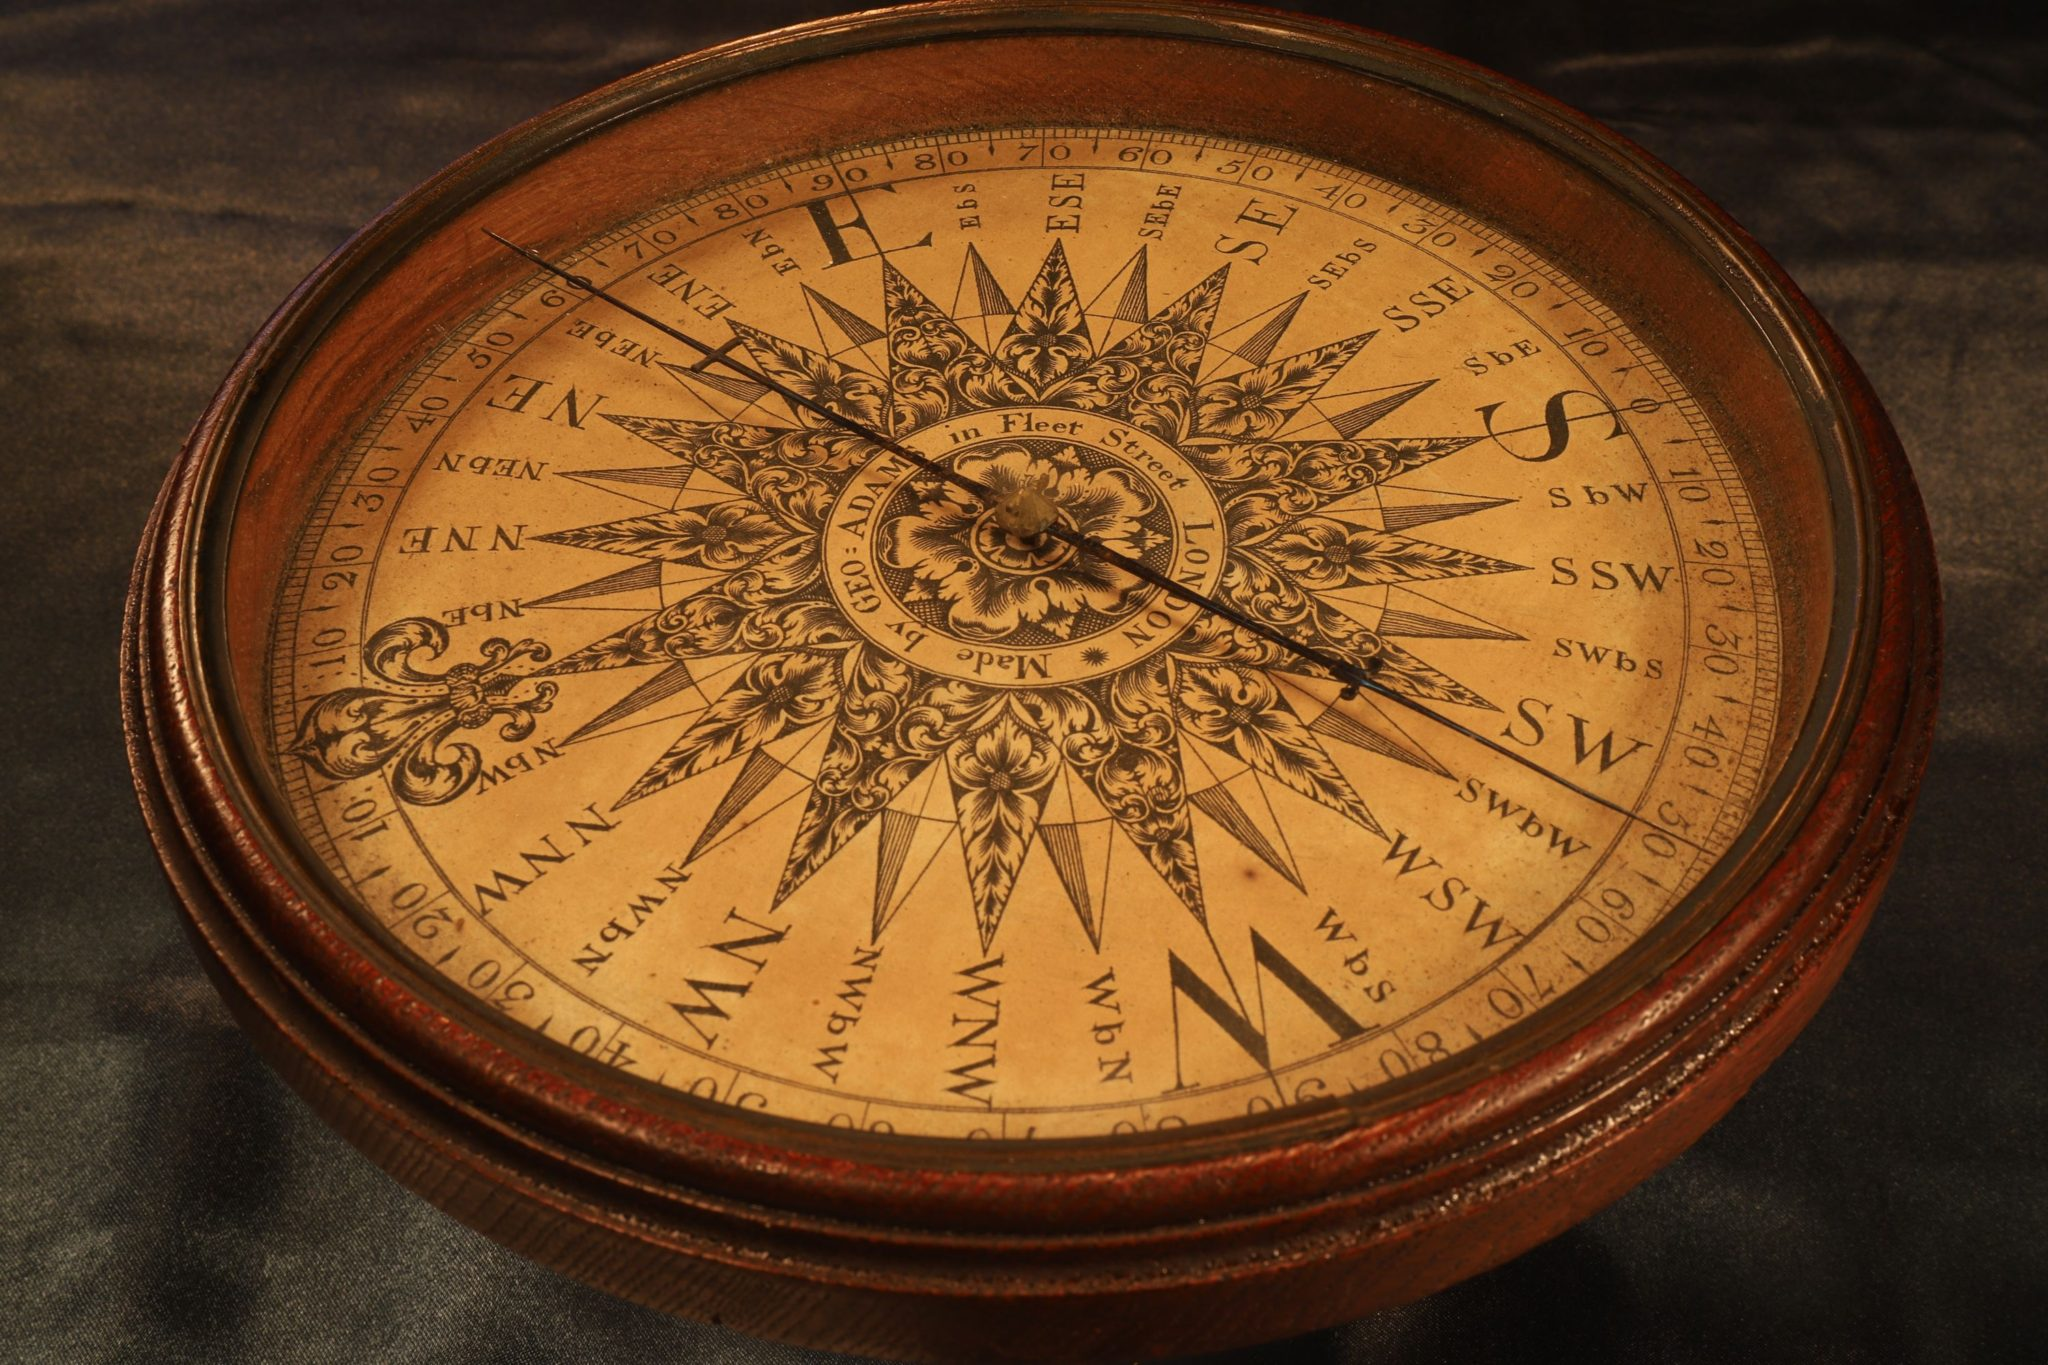 Image of George Adams Globe Compass c1775